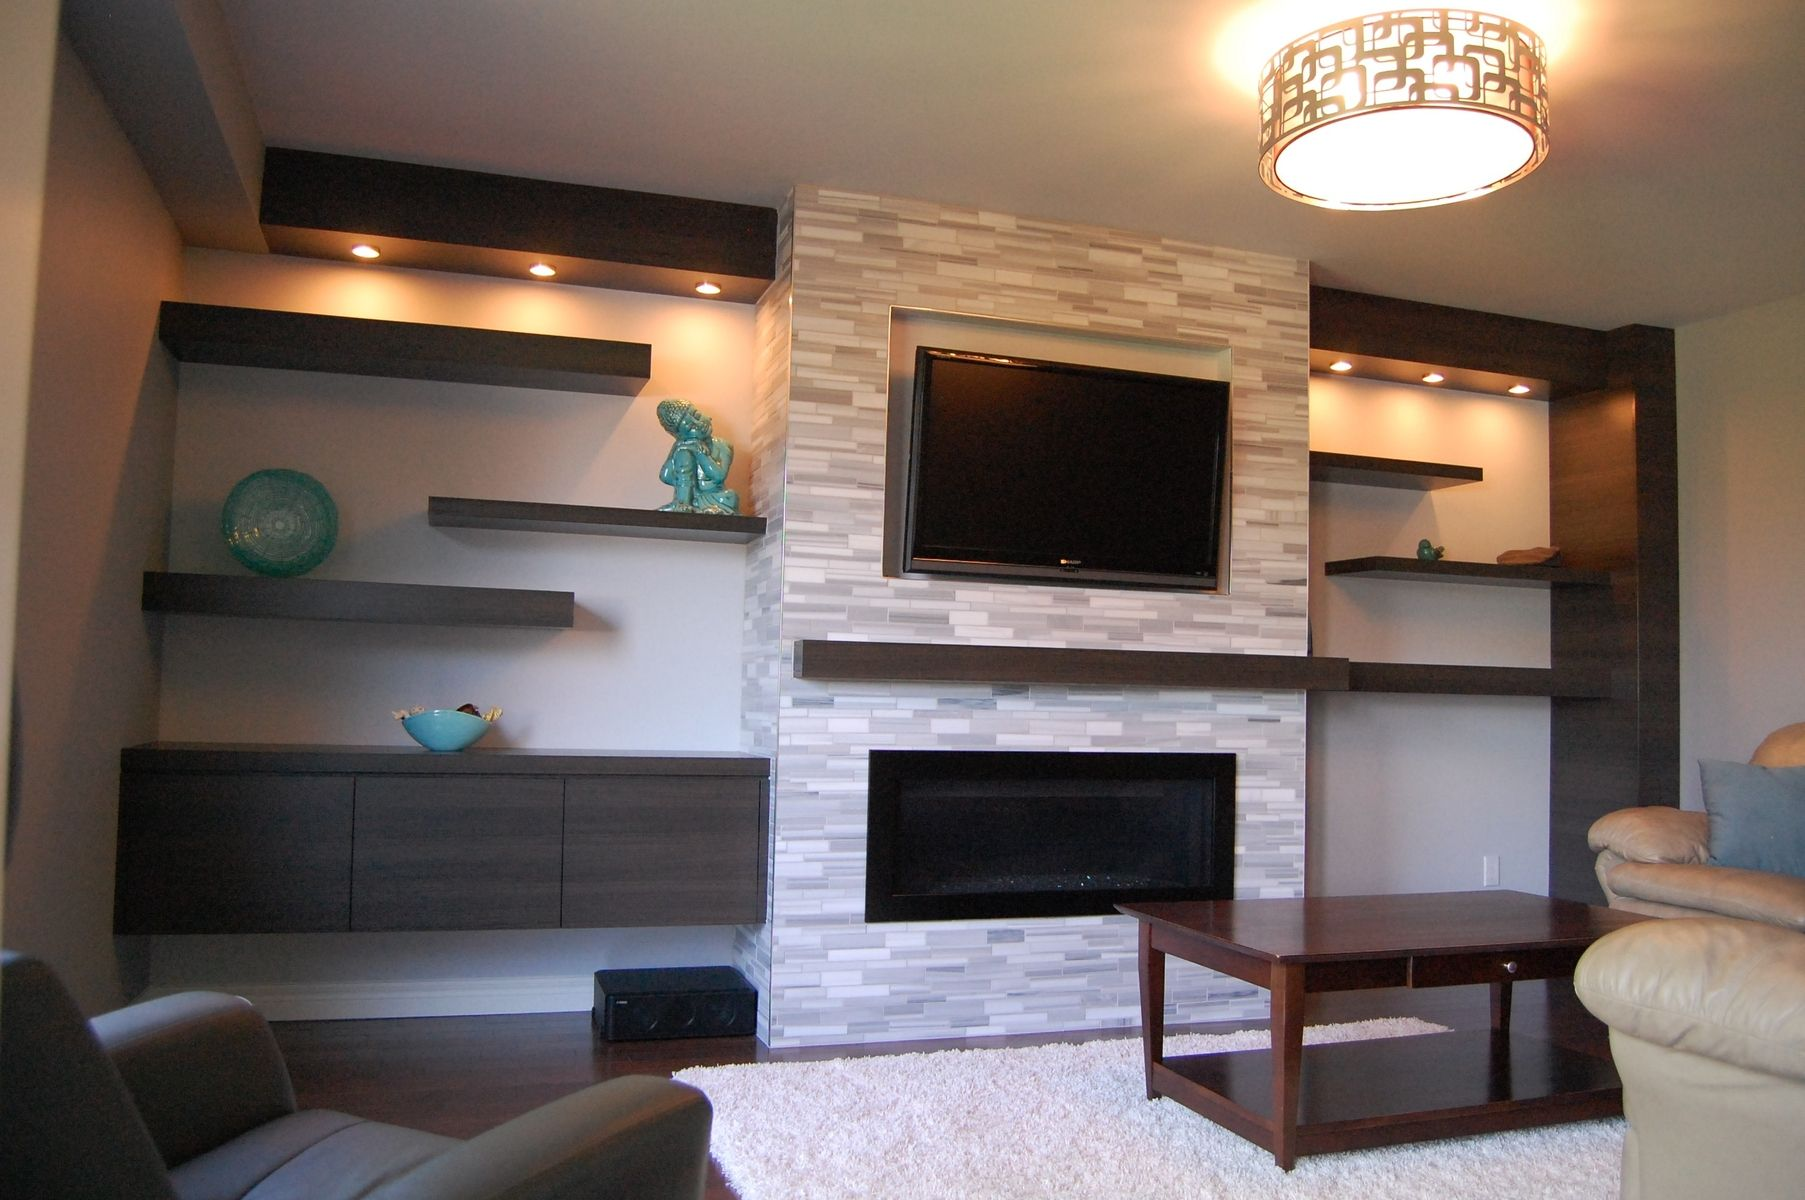 Candles for Fireplace Display Elegant Custom Modern Wall Unit Made Pletely From A Printed